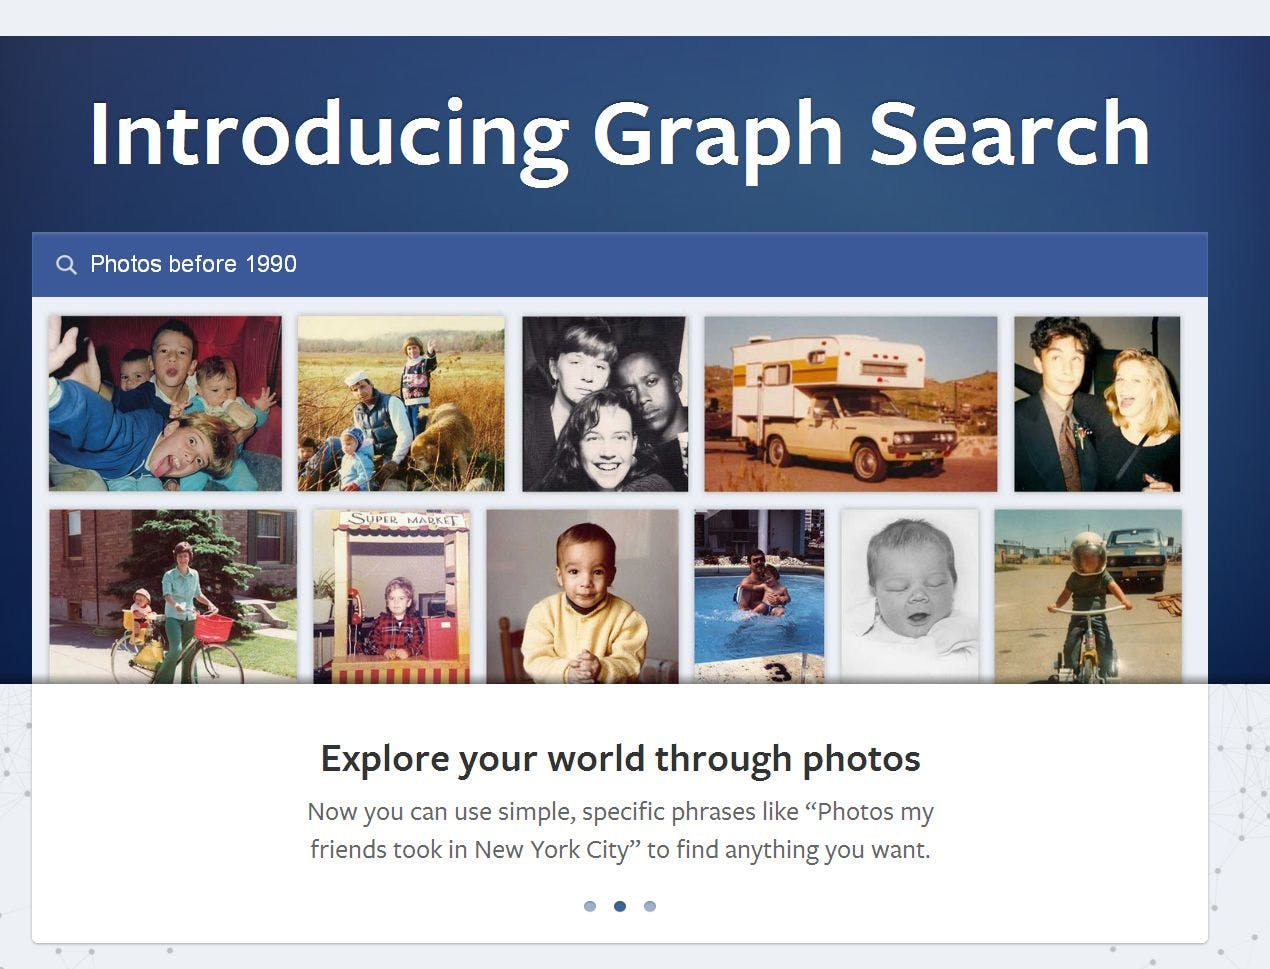 FacebookGraphSearch-Product-2013